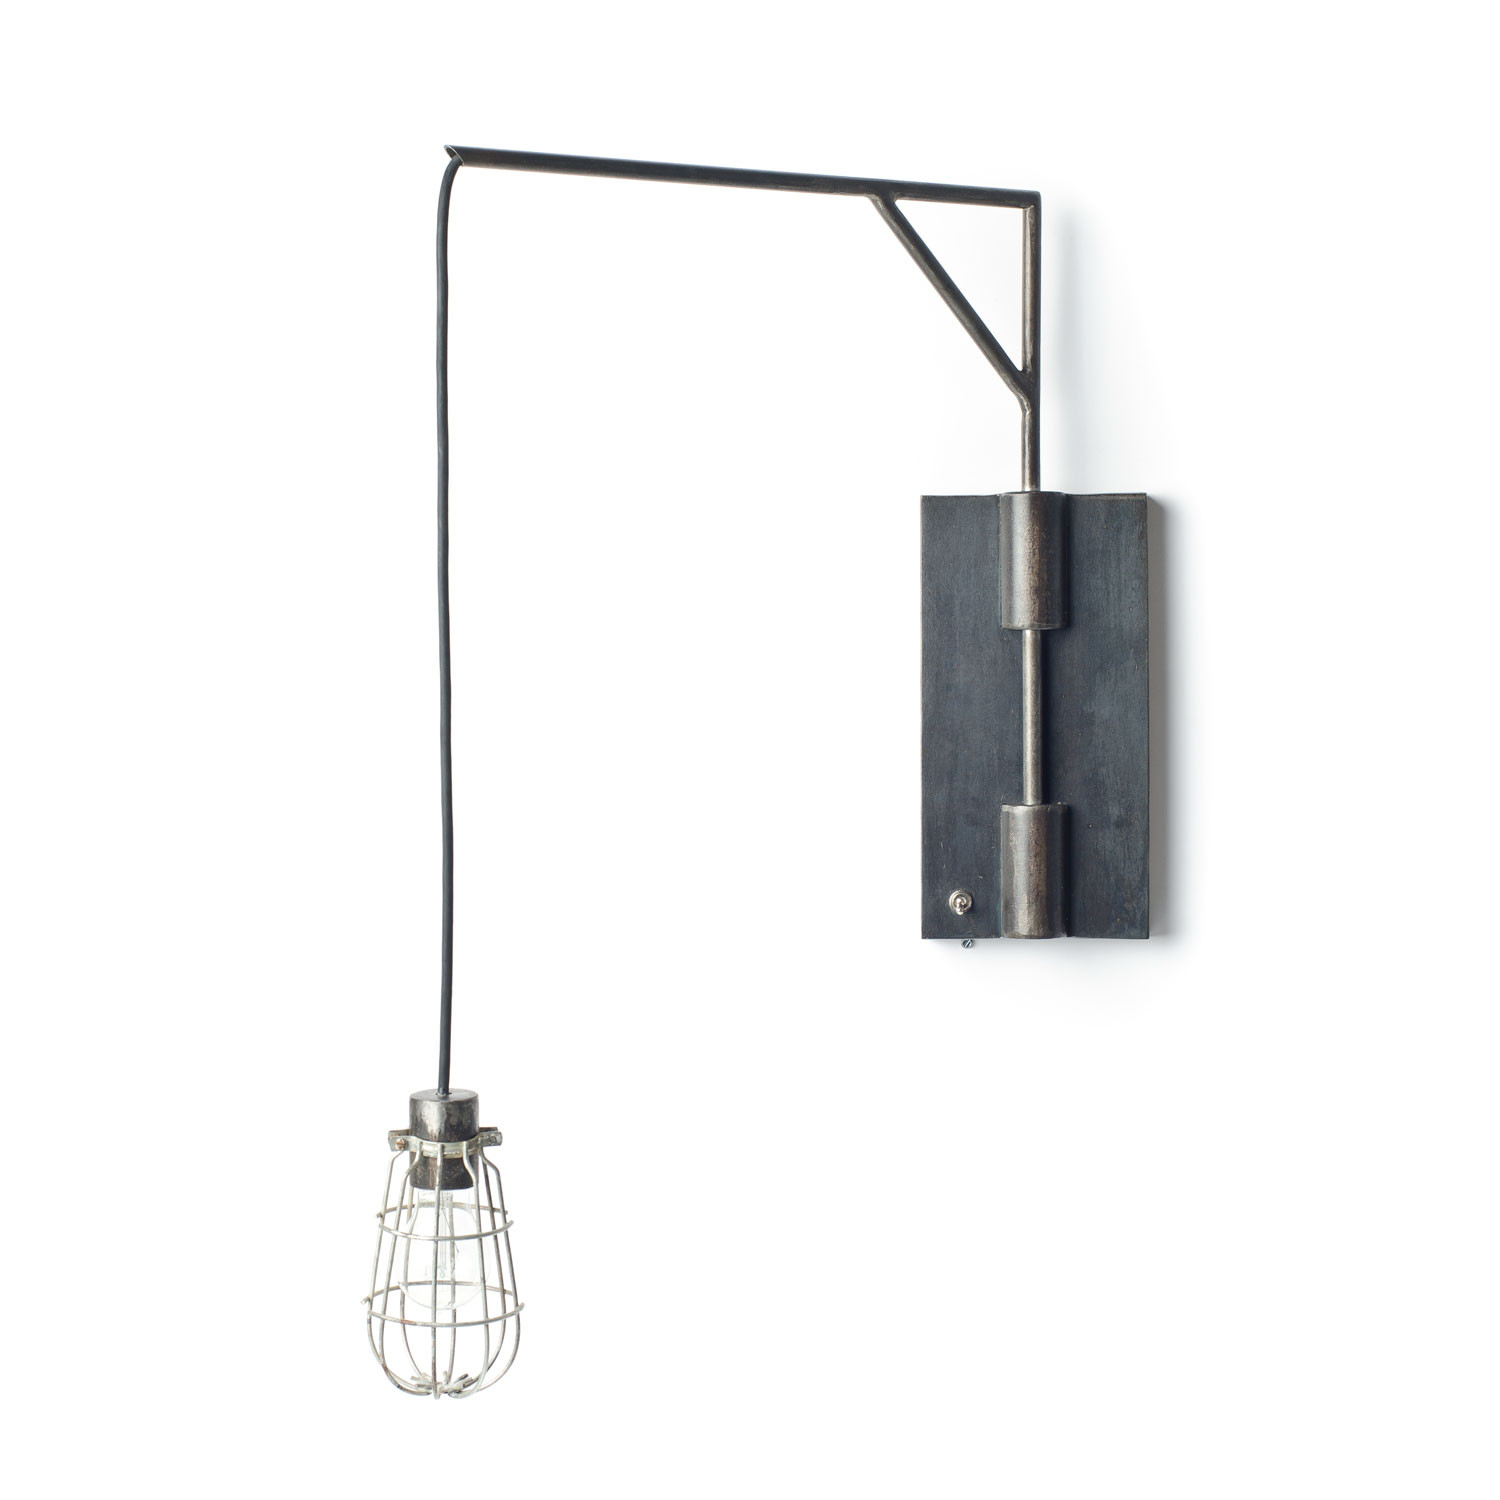 Swing Arm Wall Lamps Made In Usa : Swing-Arm Wall Sconce - Project Sunday - Touch of Modern